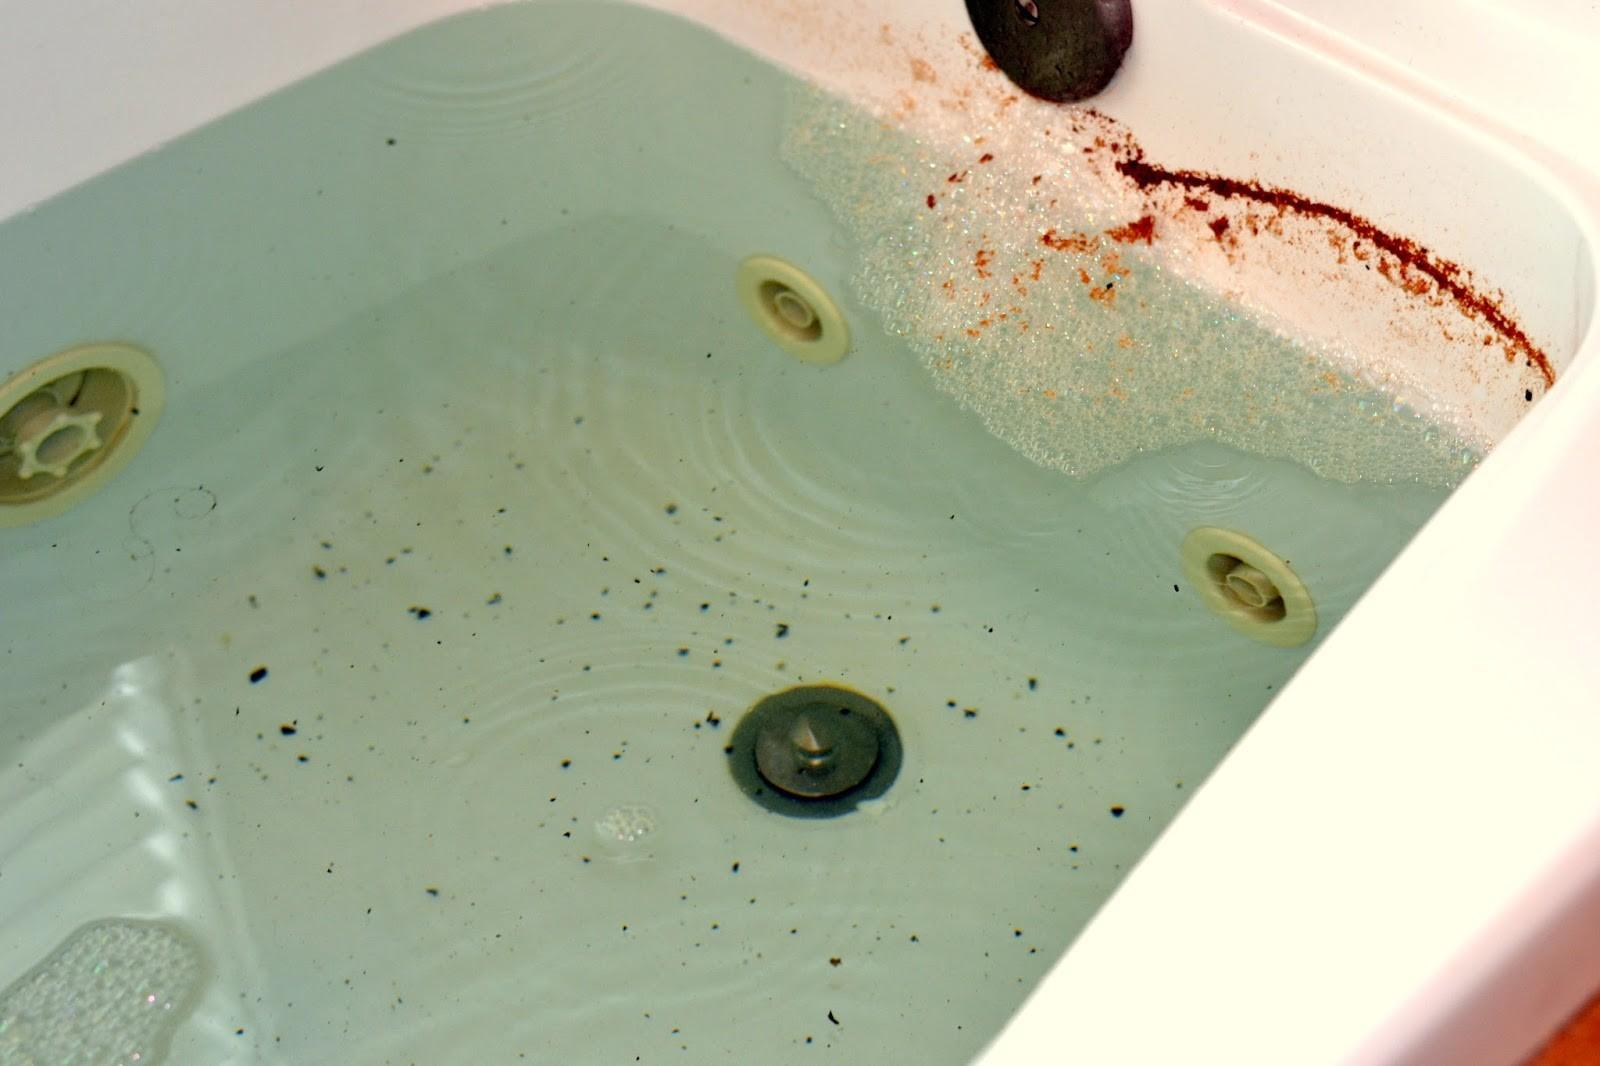 Clean Your Jetted Tub Rachel Teodoro